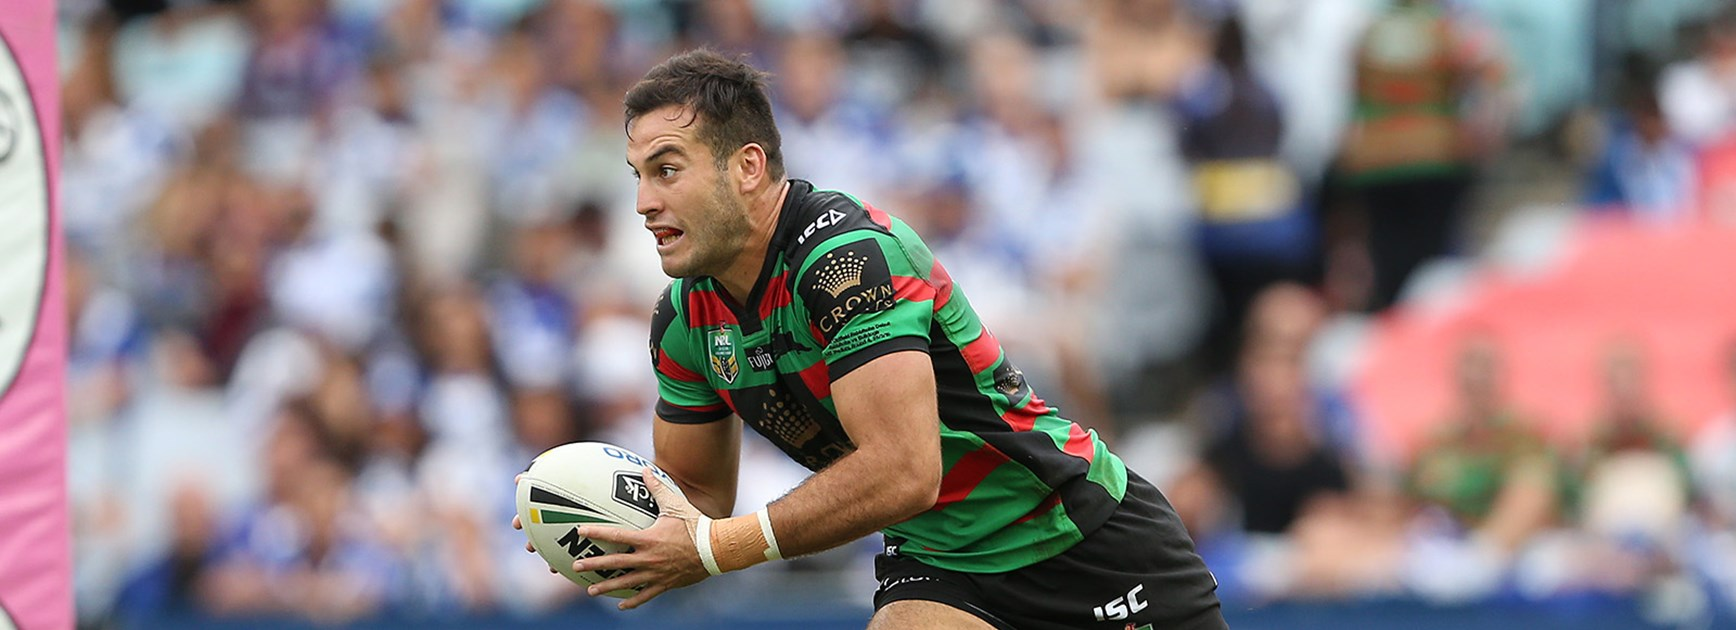 Michael Oldfield failed to make an impact at the Rabbitohs and hopes to finally nail down an NRL position at the Panthers.